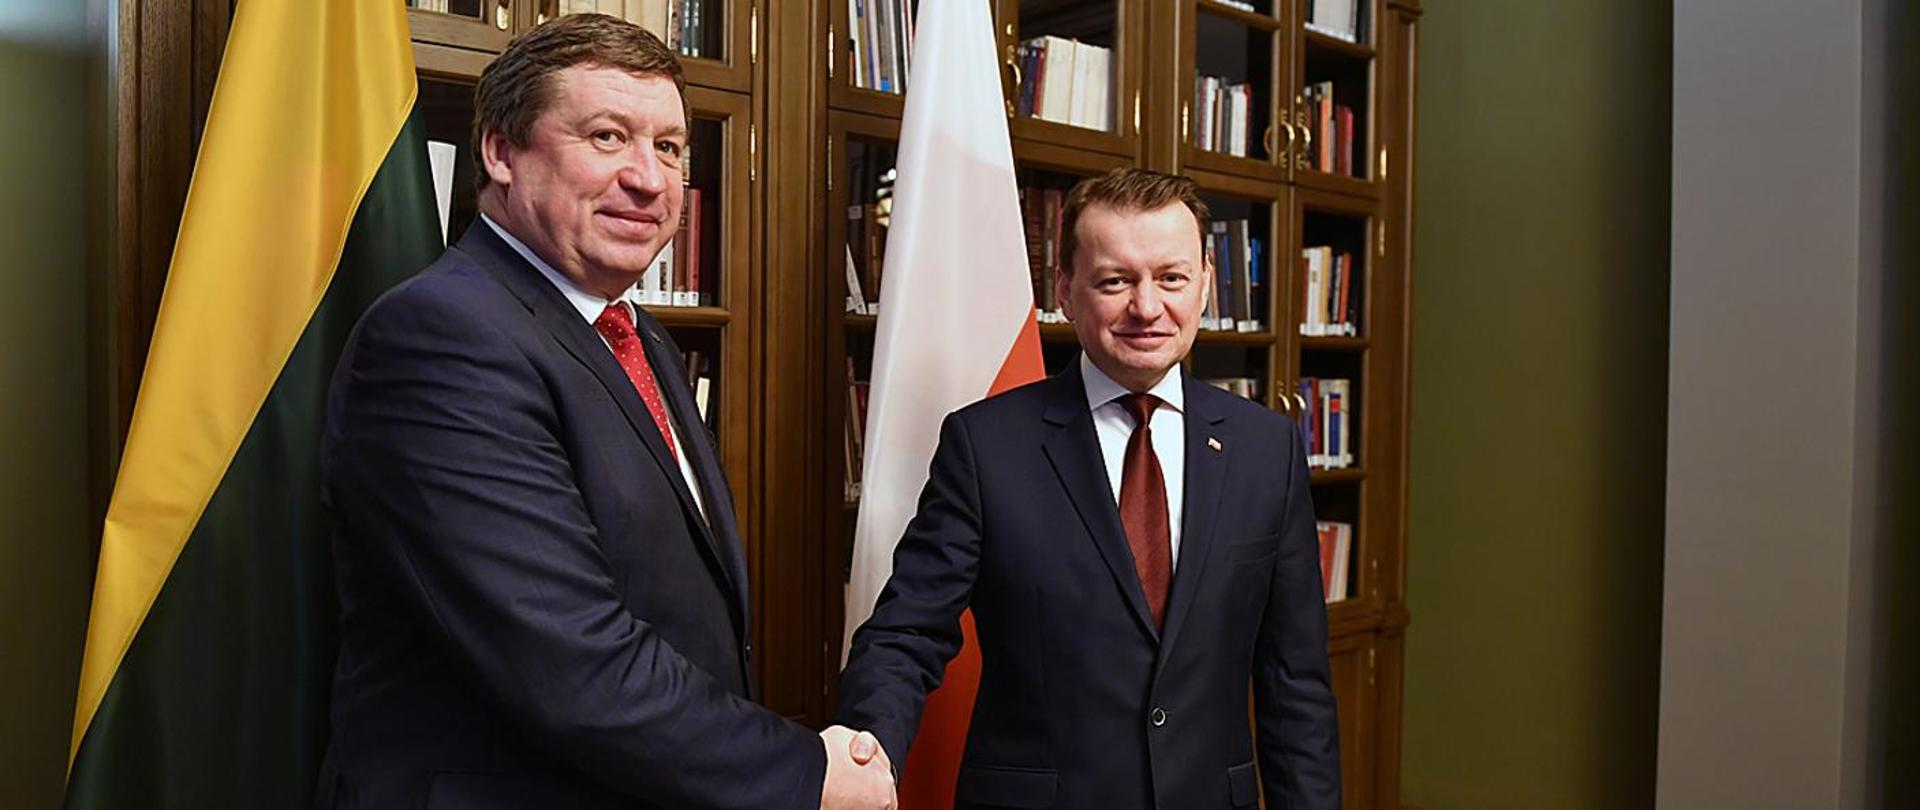 Handshake of the Defence Ministers of Poland and Lithuania in Vilnius